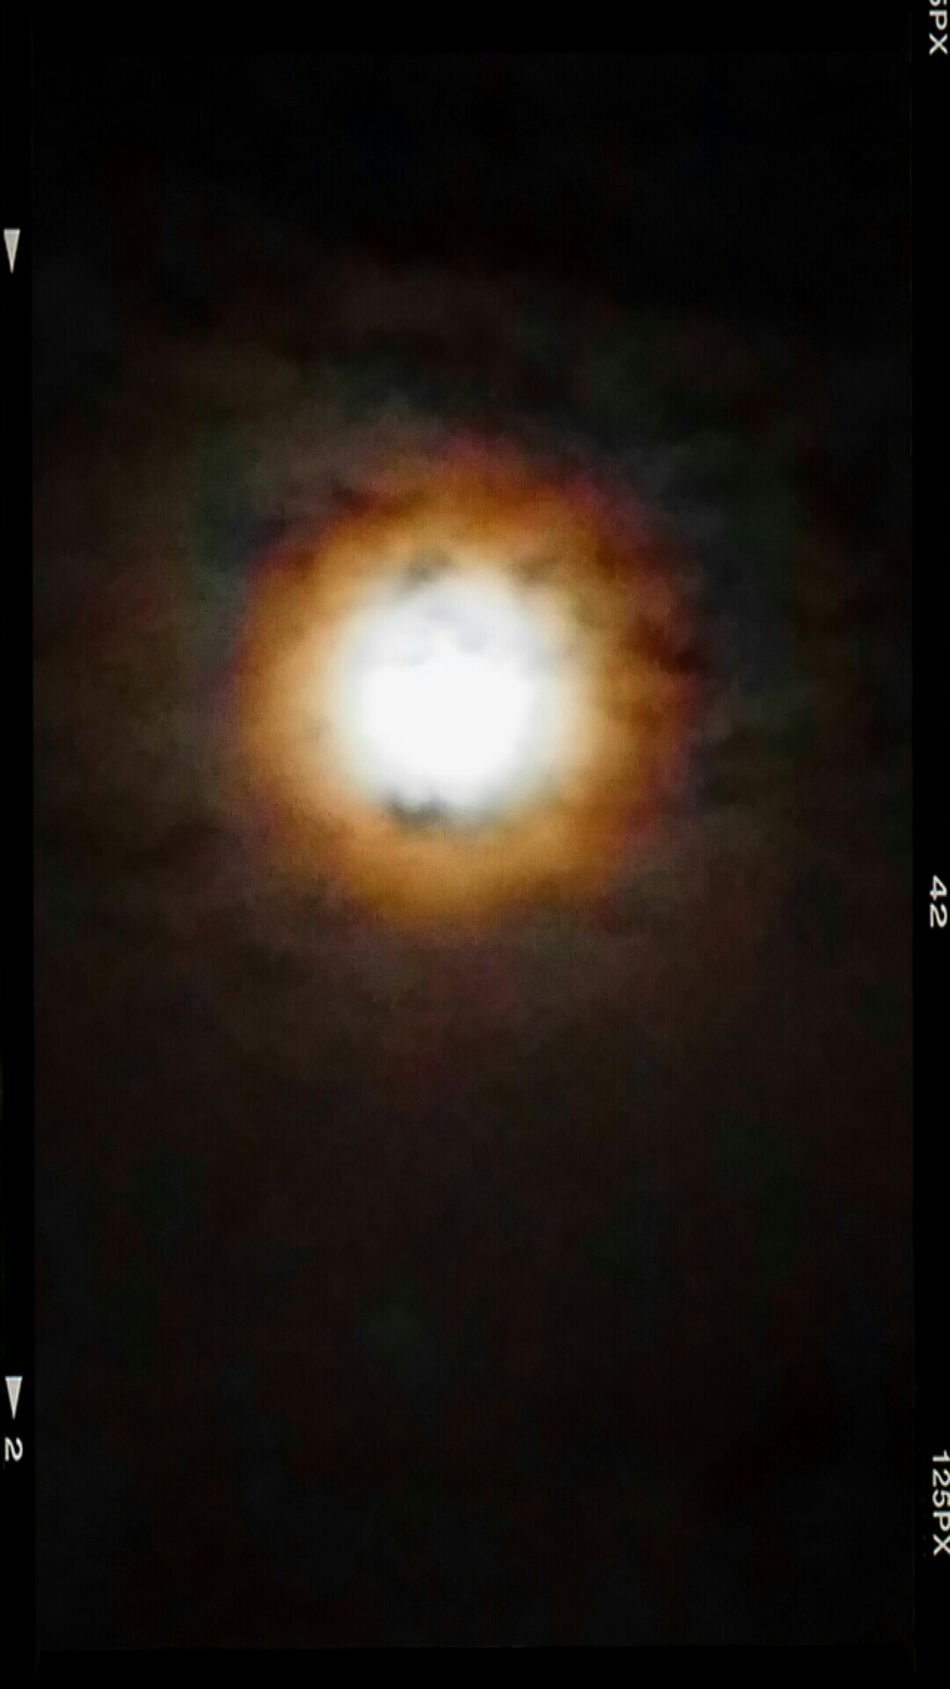 Taking Photos ❤ Full Moon Behind Clouds Galaxy Note3 Unedited Good Night ♡♡